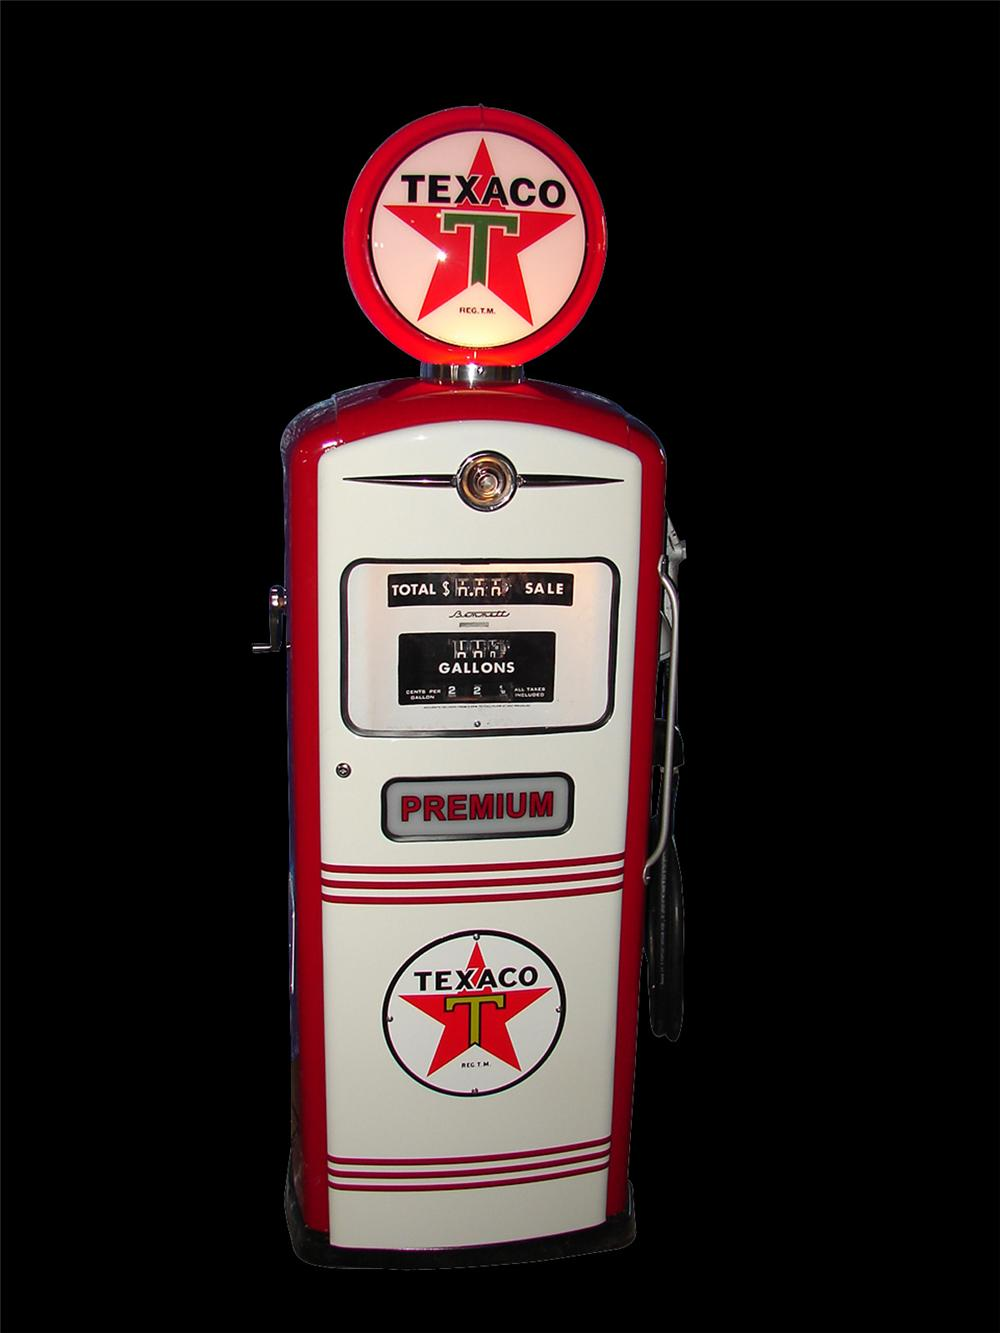 Stylish 1954 Bennett model #966 Texaco Service Station restored gas pump. - Front 3/4 - 91659